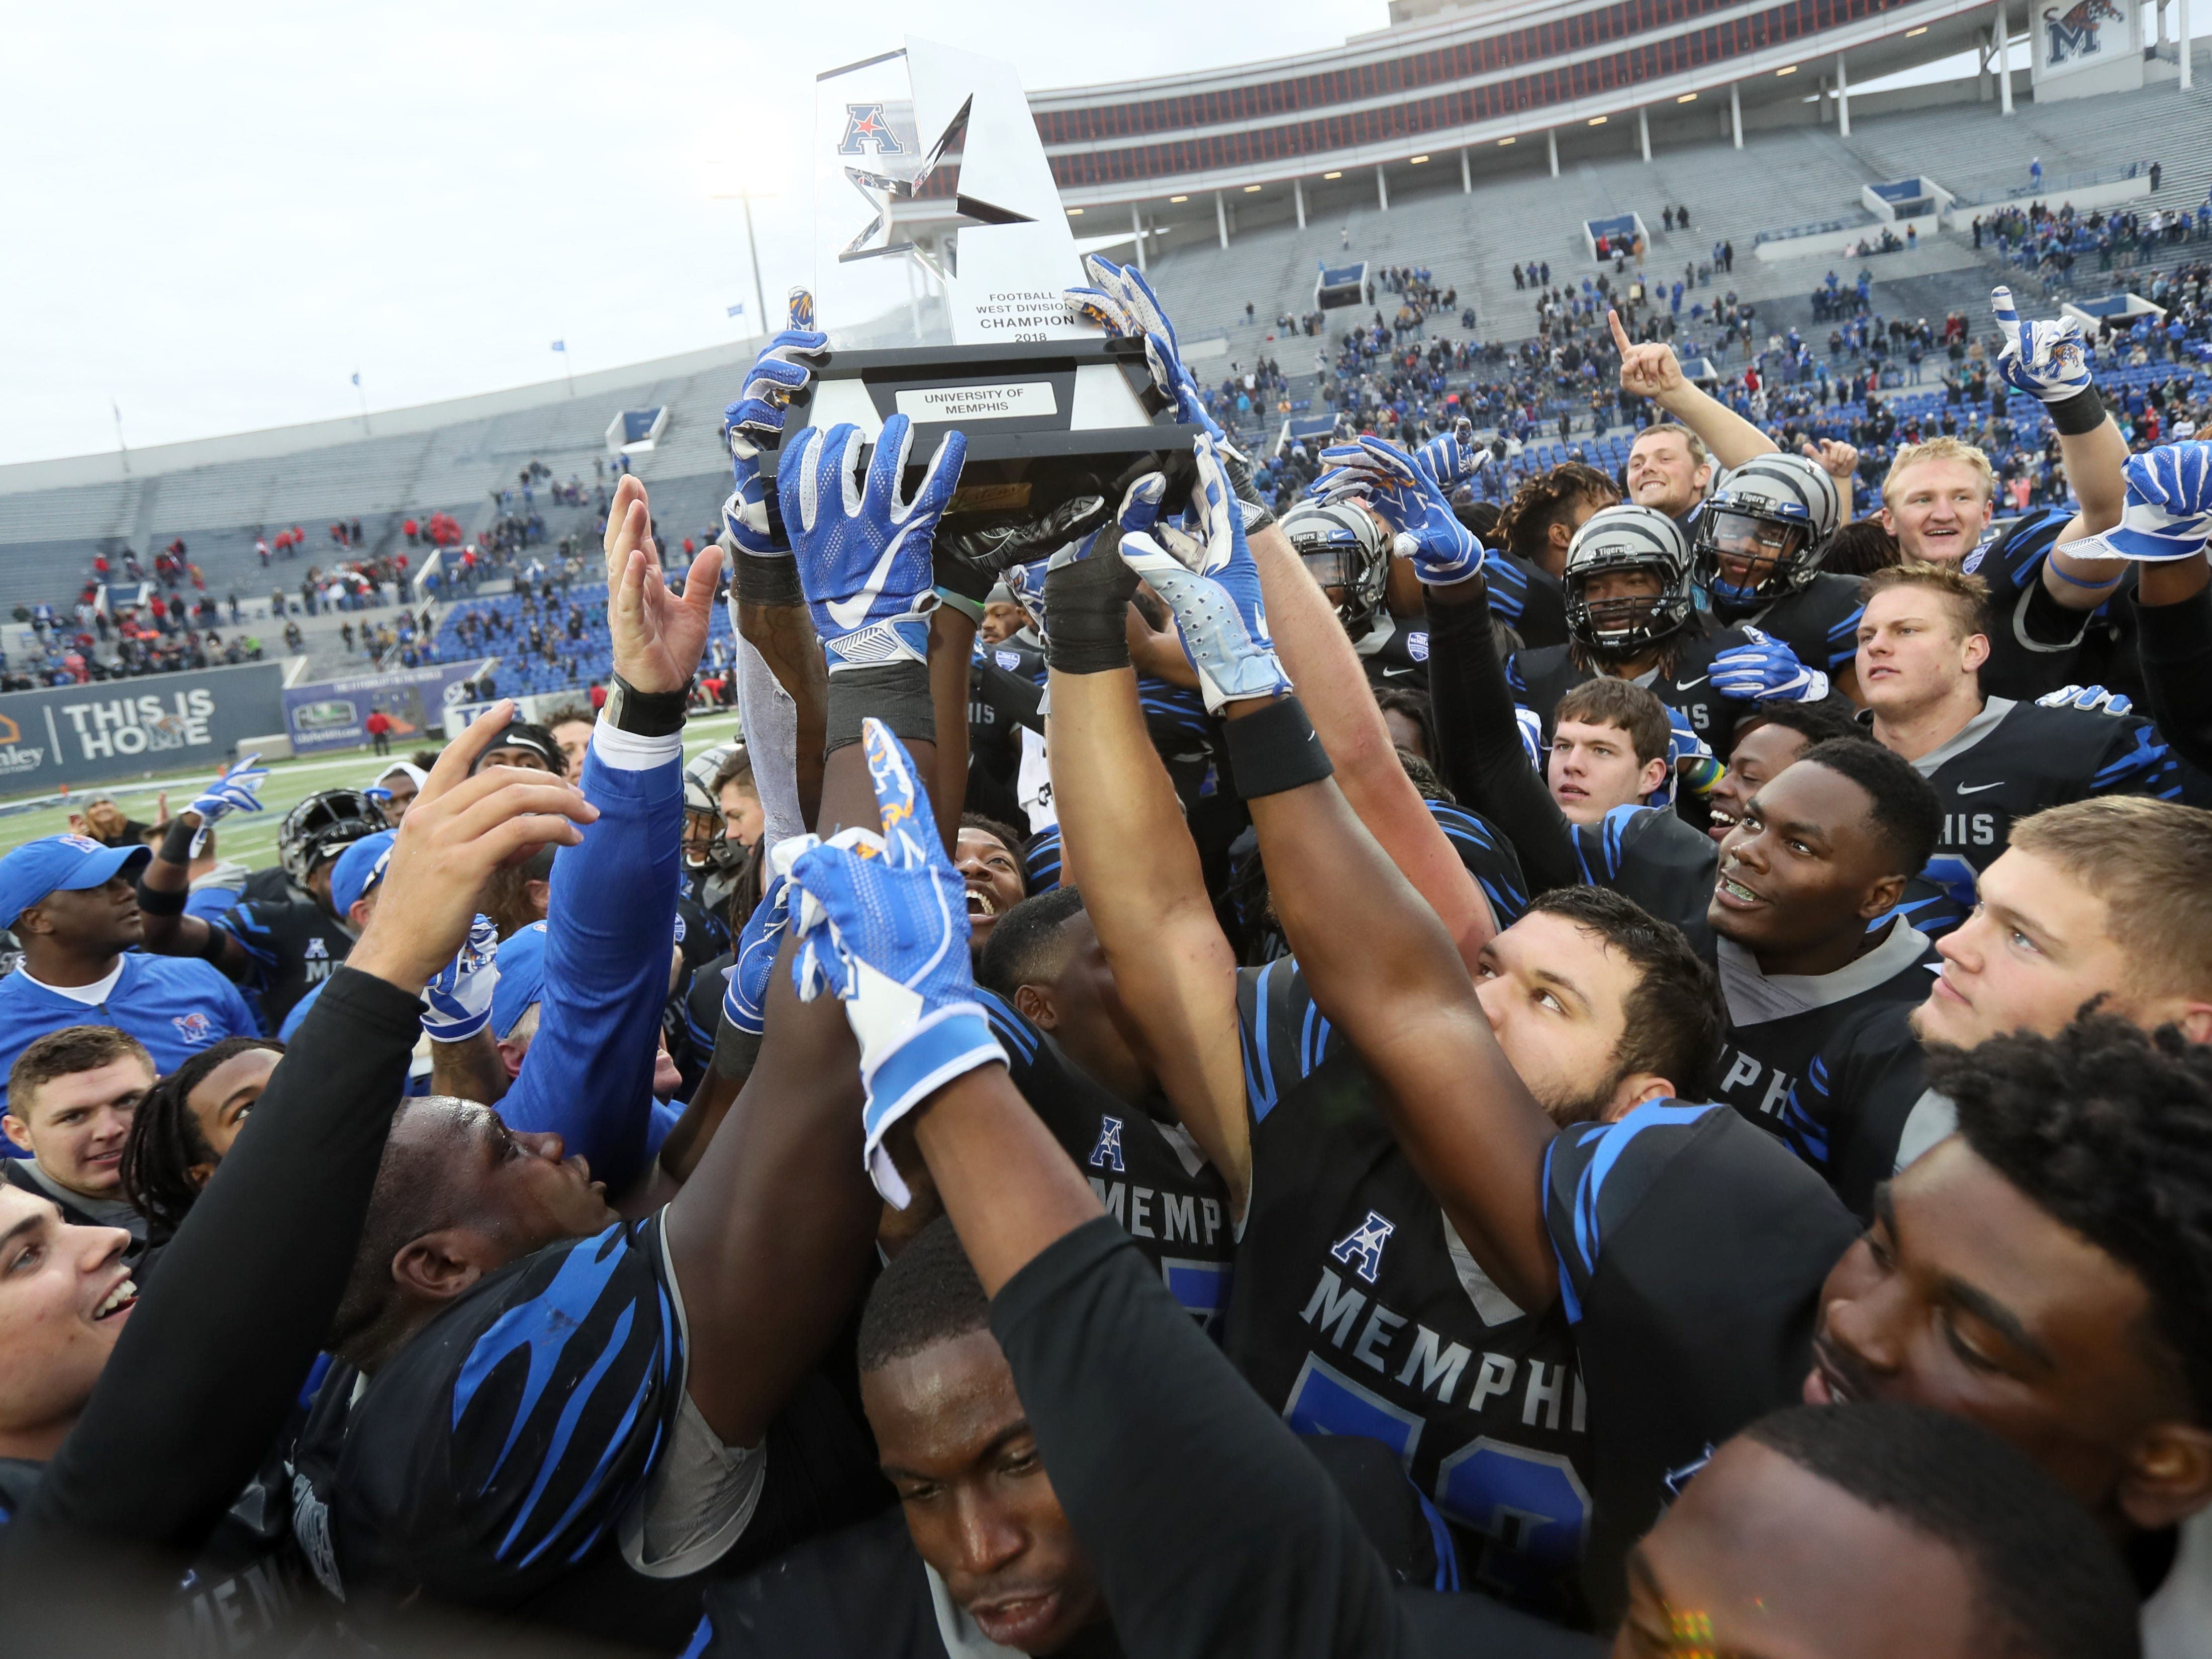 Memphis players hold their trophy after winning the AAC West title against Houston 52-31 at the Liberty Bowl on Friday, Nov. 23, 2018.